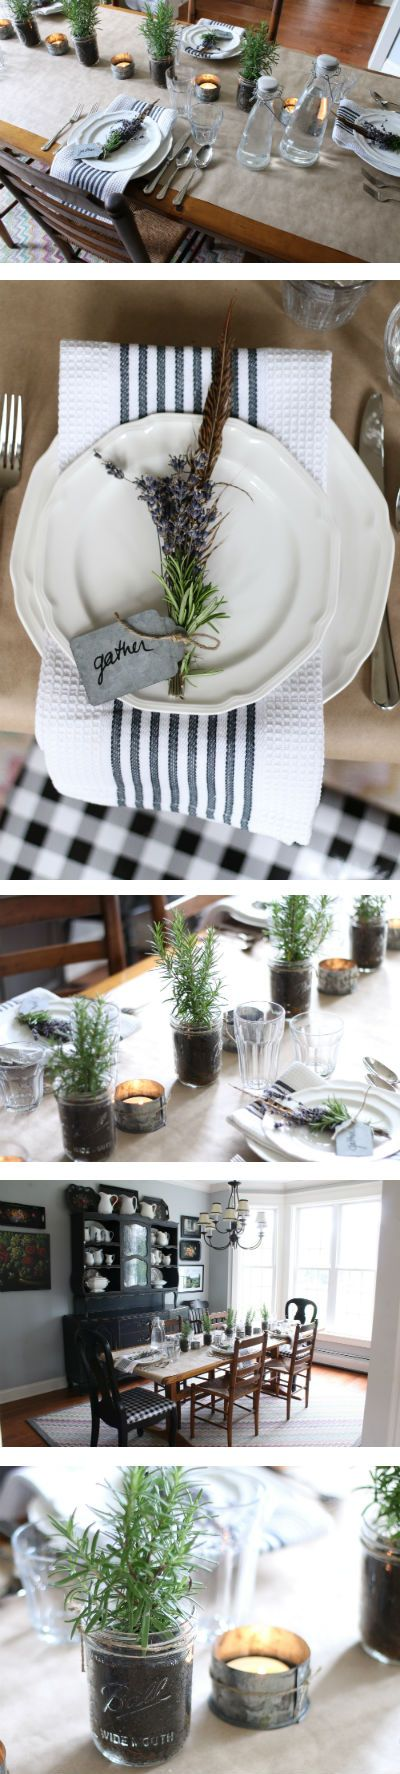 Simple Holiday Table: DIY Mason Jar plants